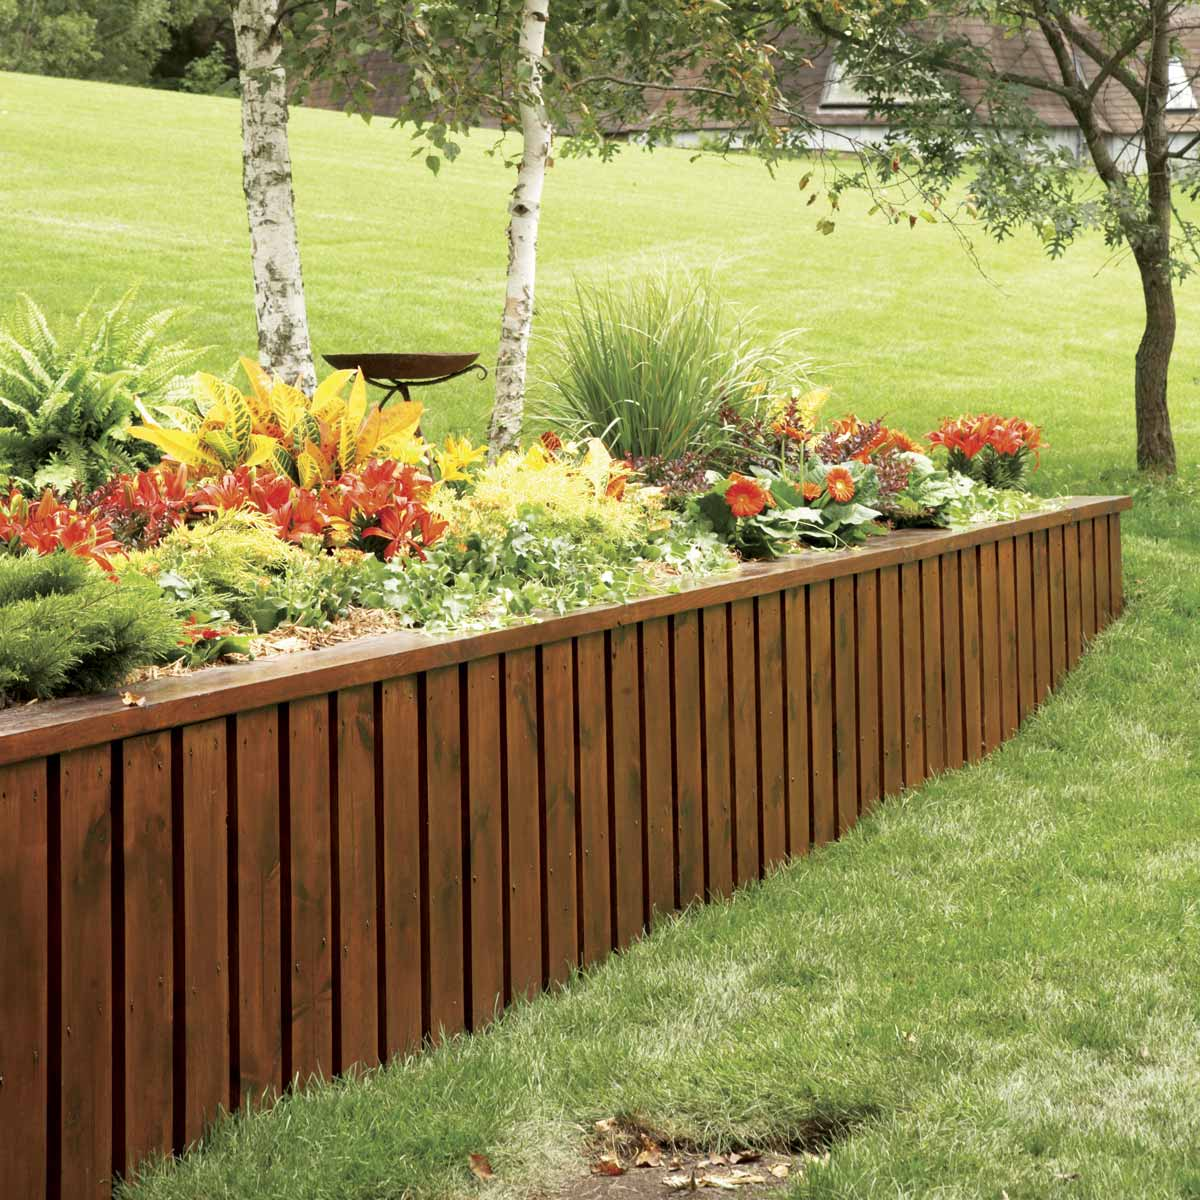 Concrete Retaining Wall Ideas: How To Build A Retaining Wall